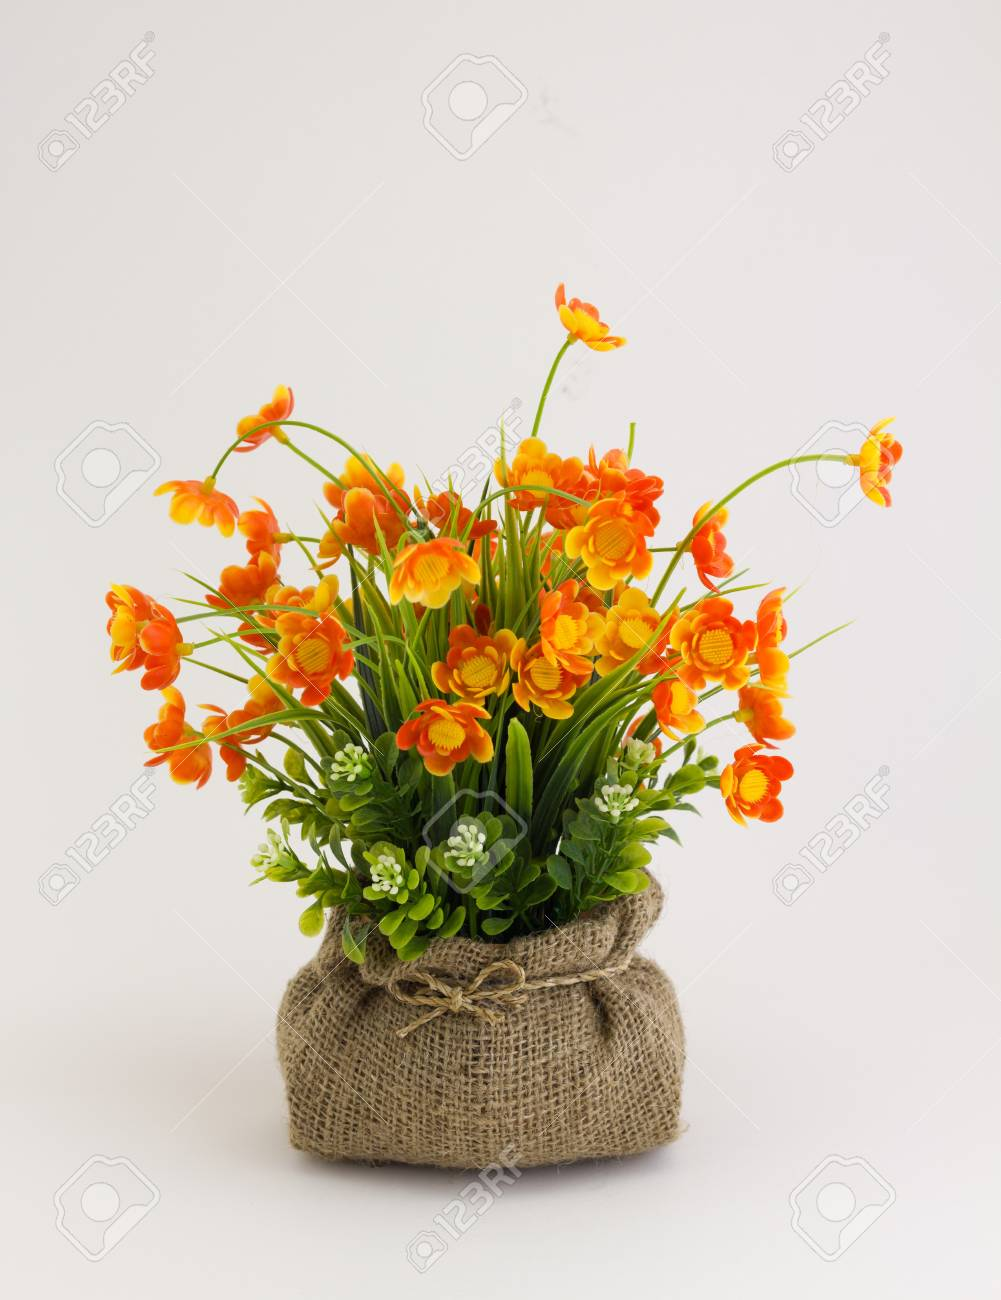 Yellow Flower On White Background With Bag Stock Photo Picture And